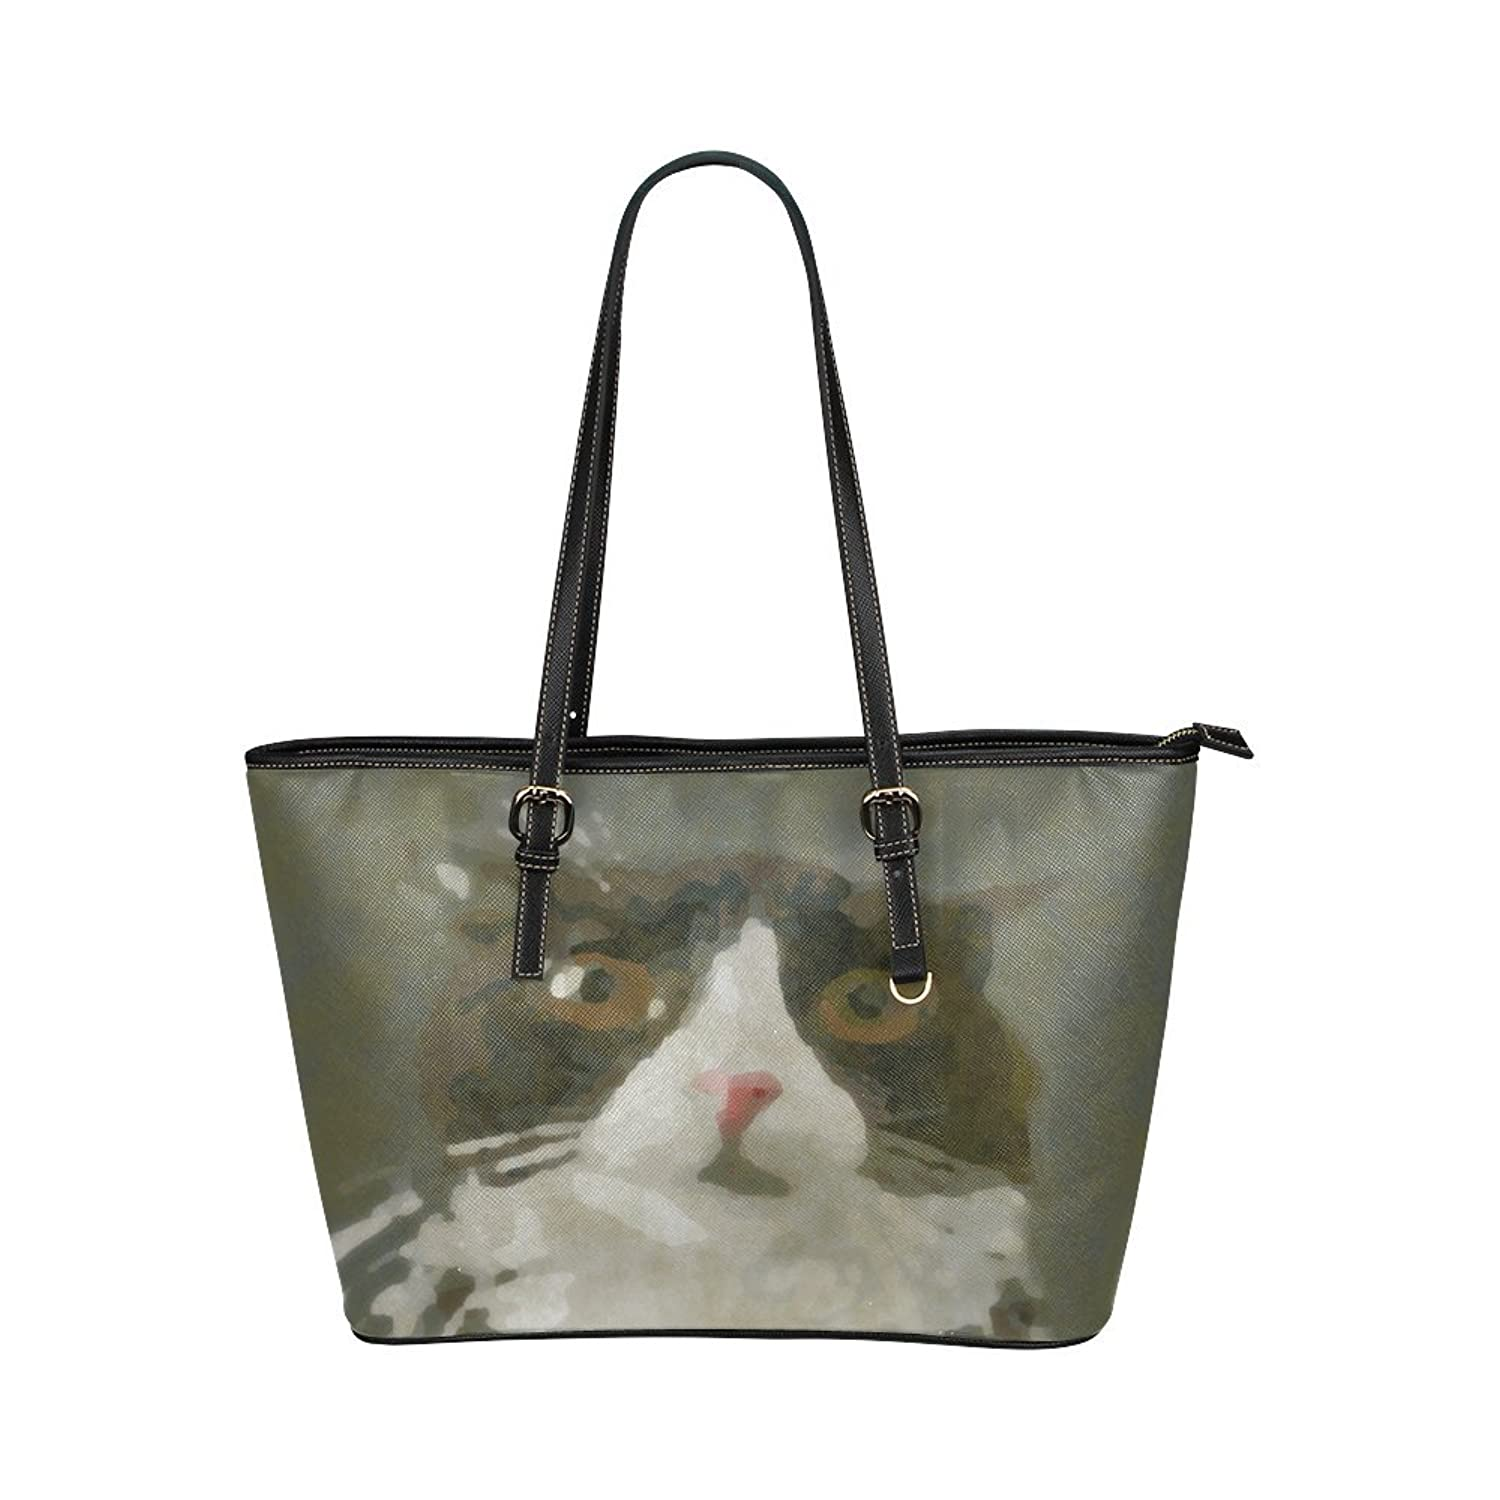 Nicedesigned Tote Bag Cat With The Cream Leather Tote Shoulder Bag Handbag for Women Girls